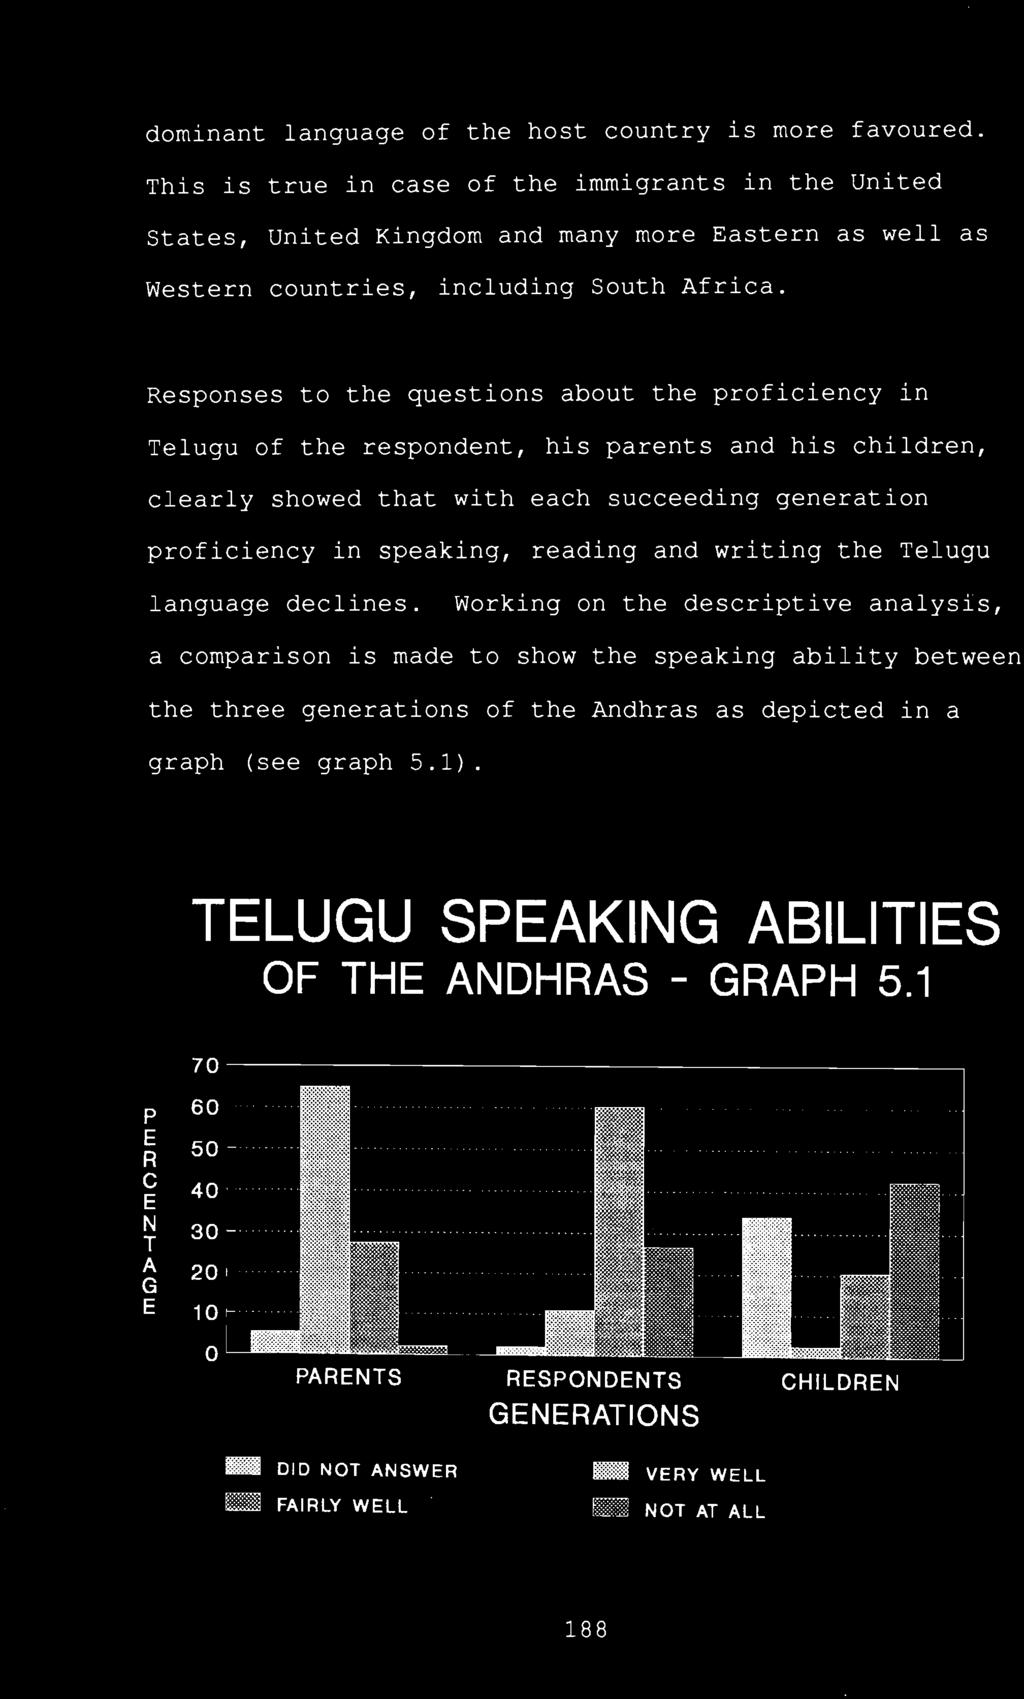 THE TELUGU LANGUAGE AND ITS INFLUENCE ON THE CULTURAL LIVES